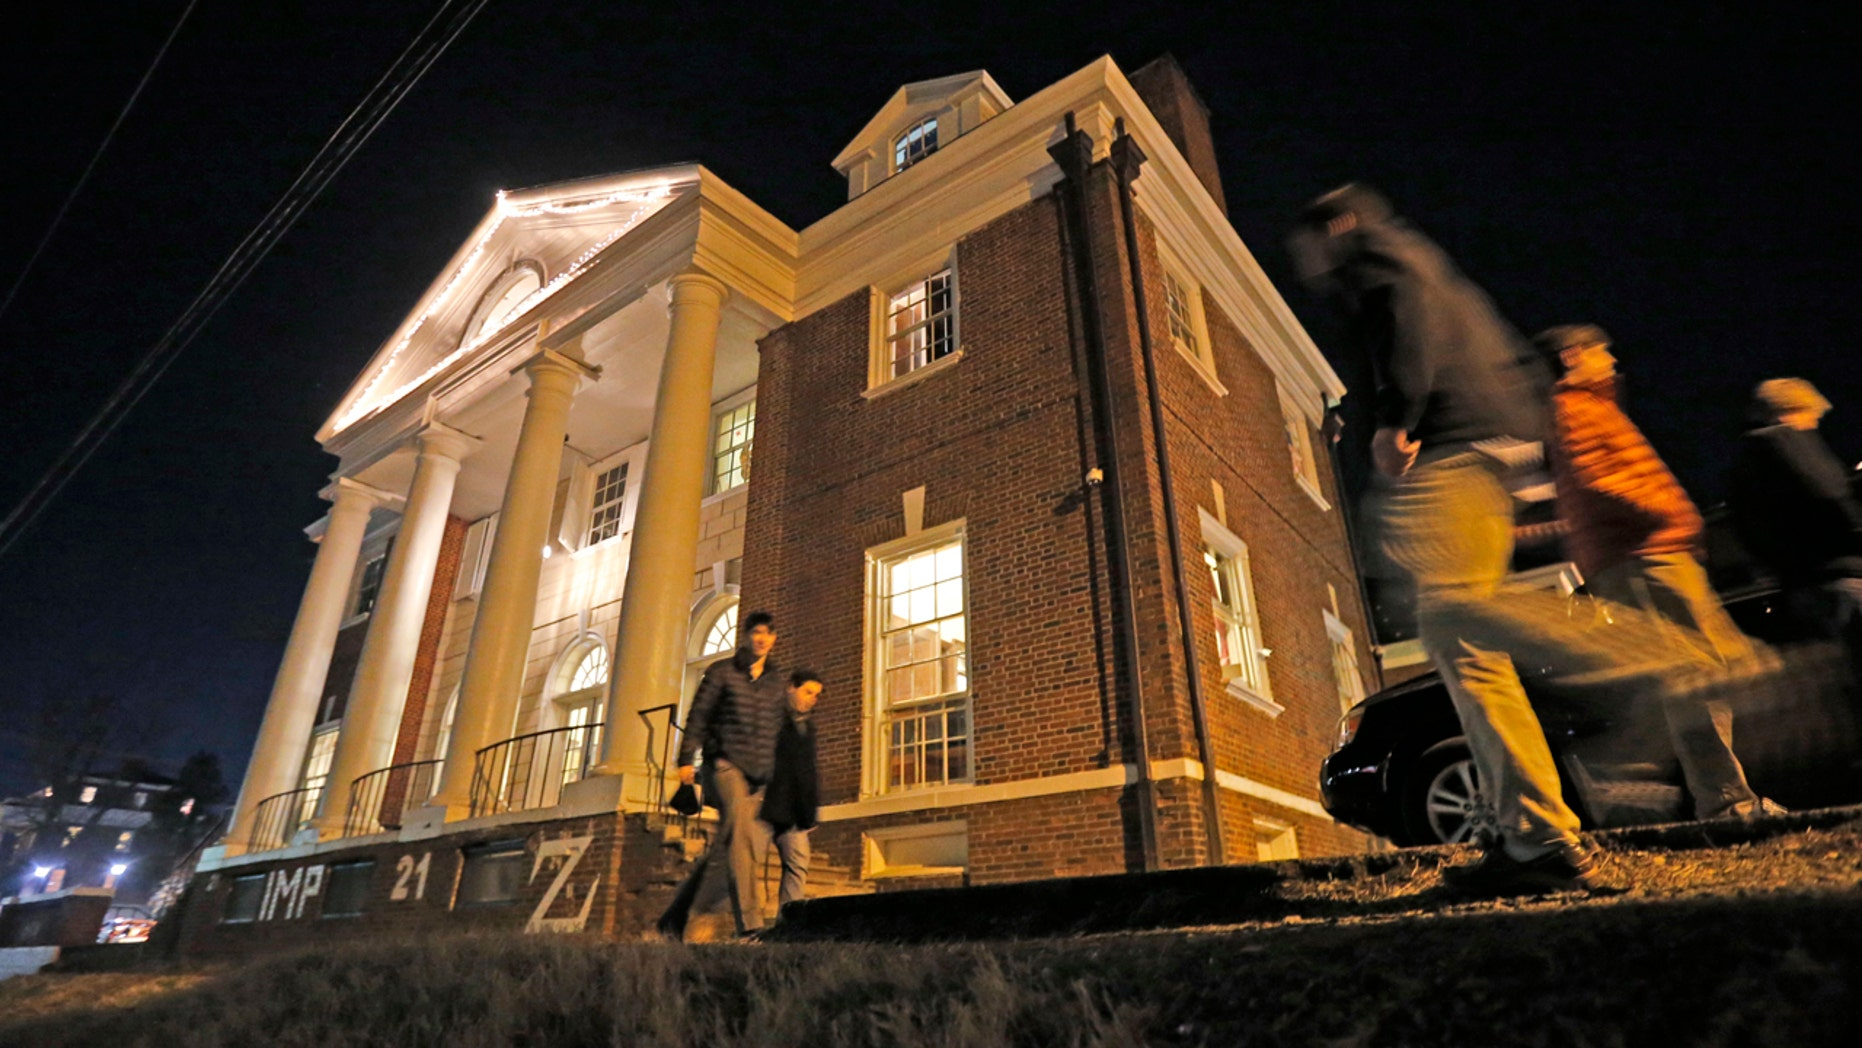 Jan. 15, 2015: Students participating in rush pass by the Phi Kappa Psi house at the University of Virginia in Charlottesville, Va.